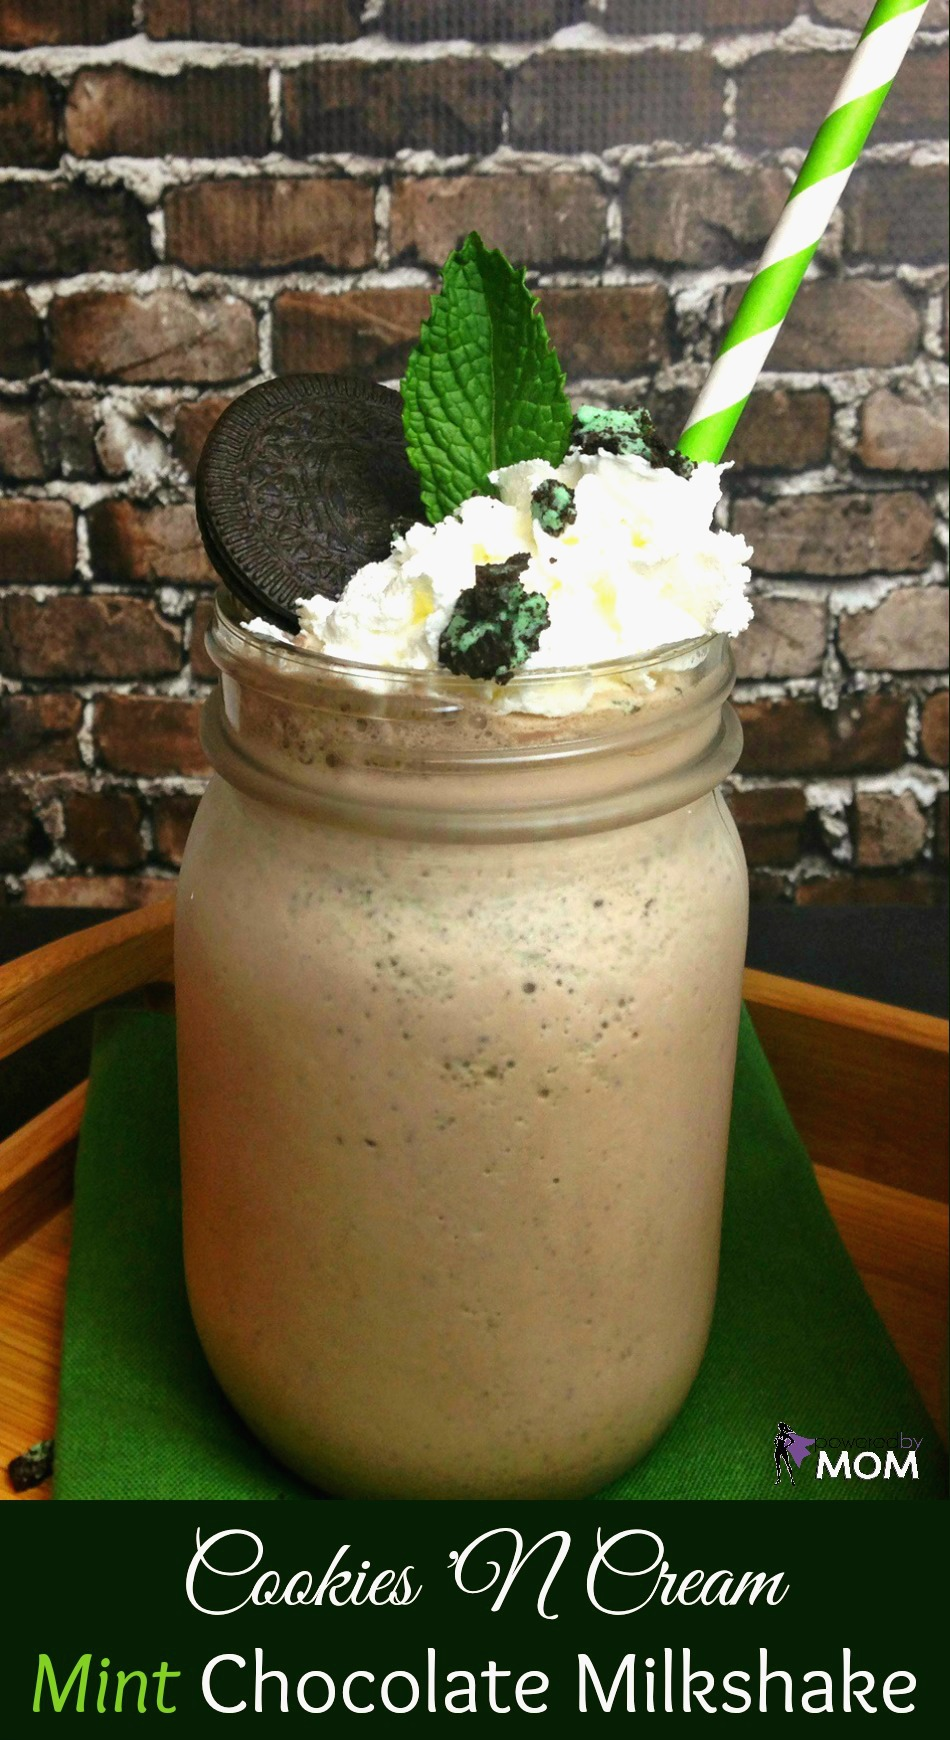 Cookies 'N Cream Mint Chocolate Milkshake vertical banner 2